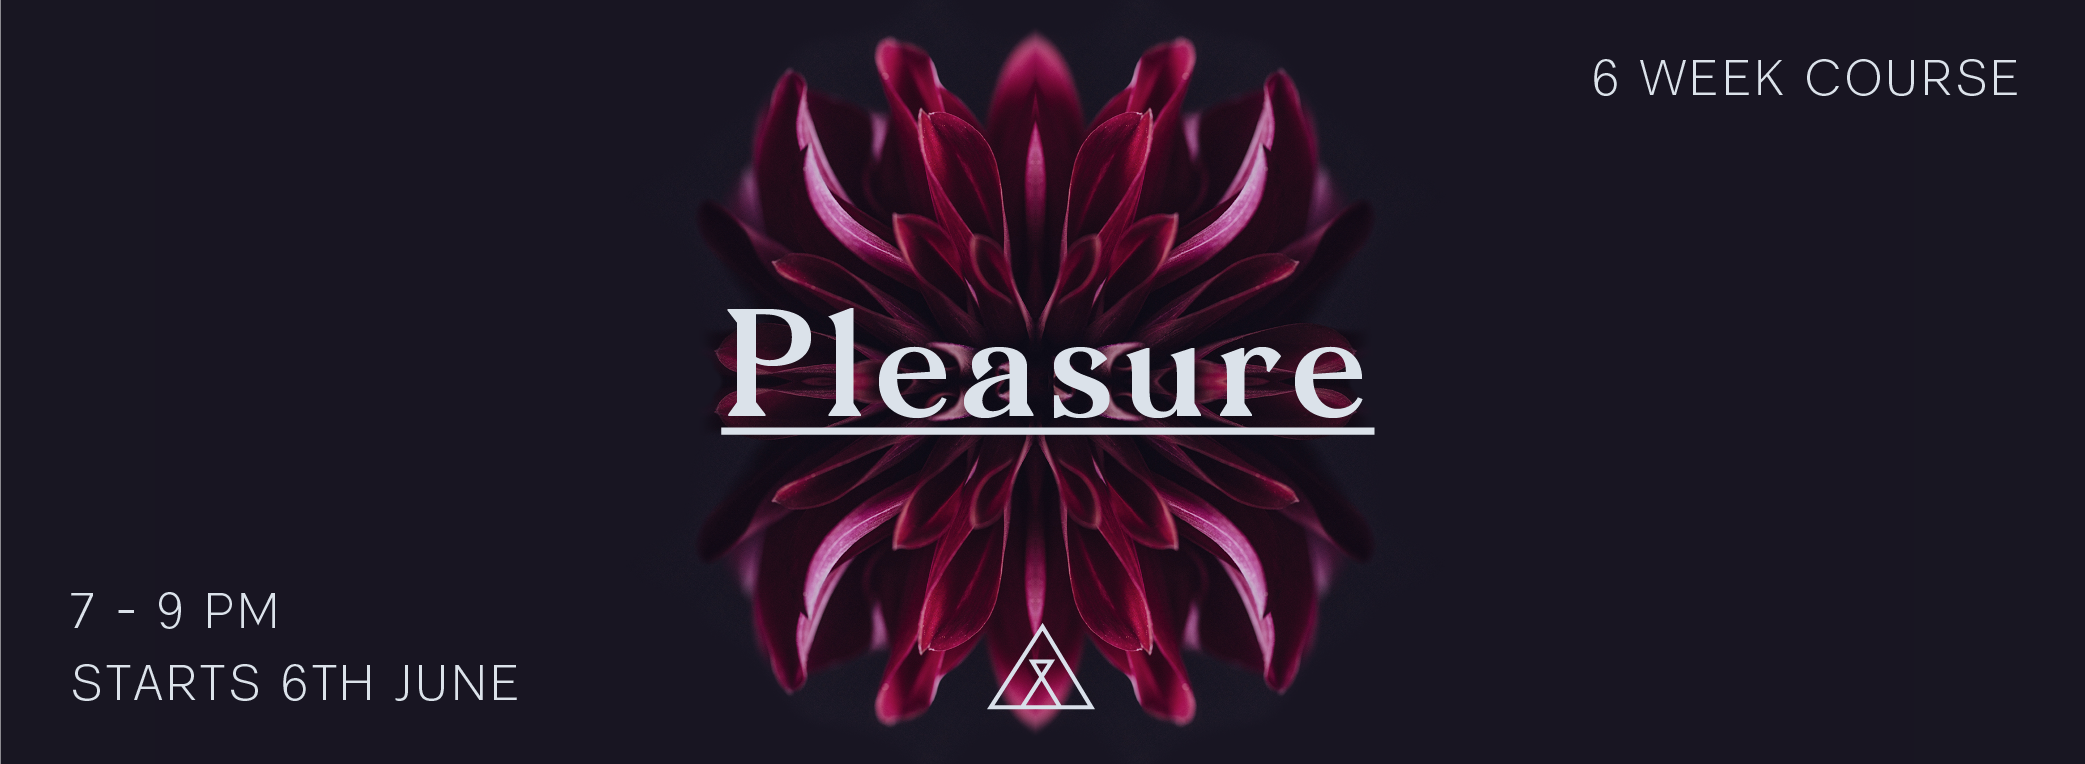 PLEASURE_Web Header3